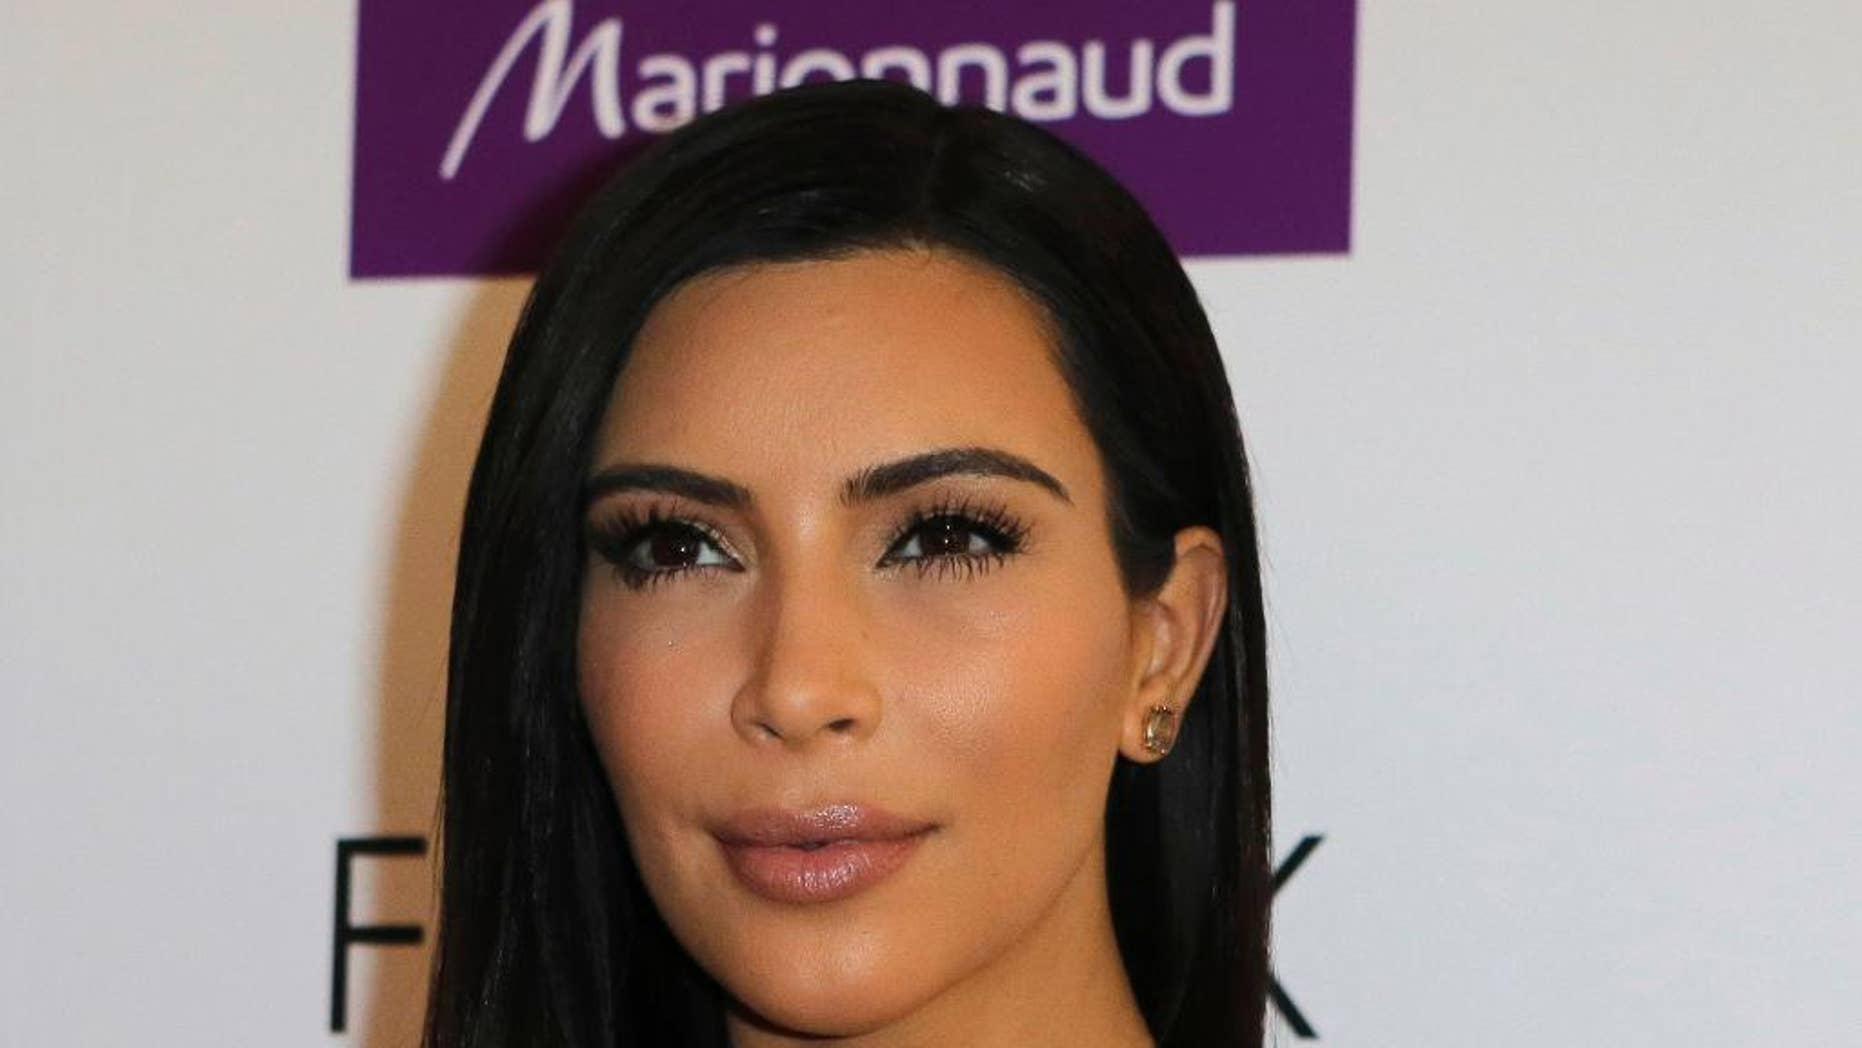 April 15, 2015. Kim Kardashian attends a photocall to launch hair products in Paris.